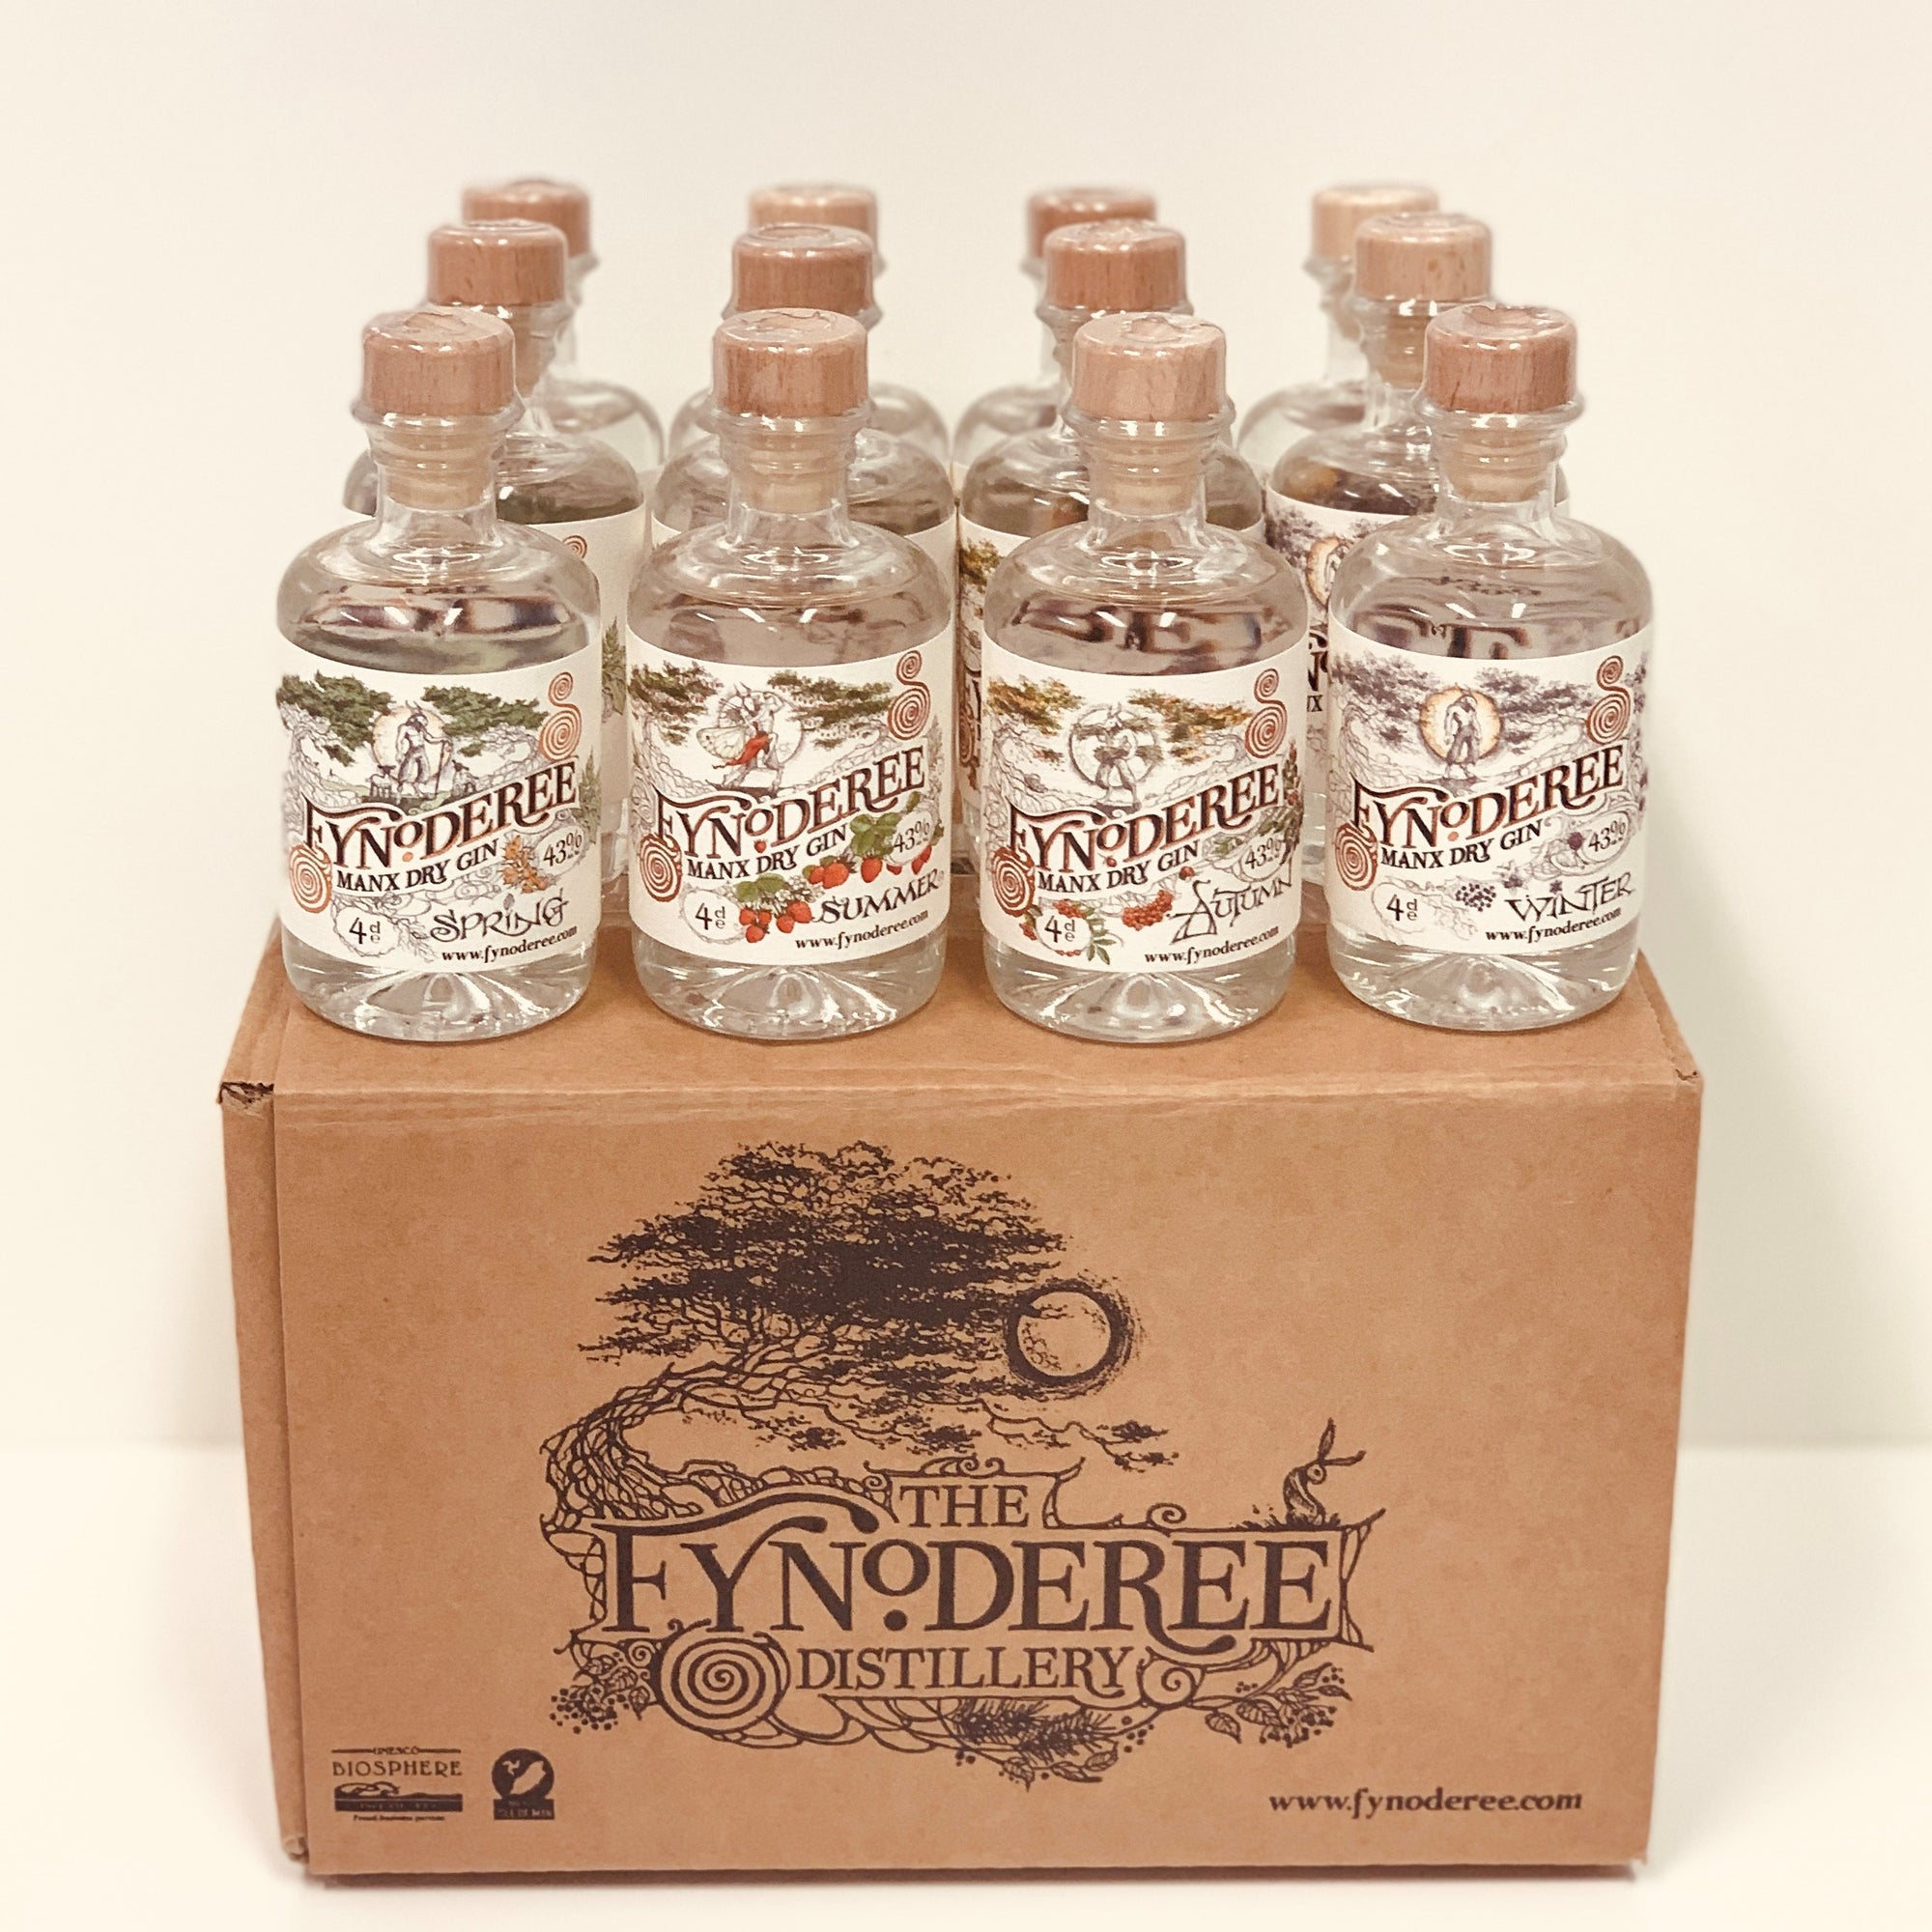 Fyniatures Case - 12 x 4cl bottles